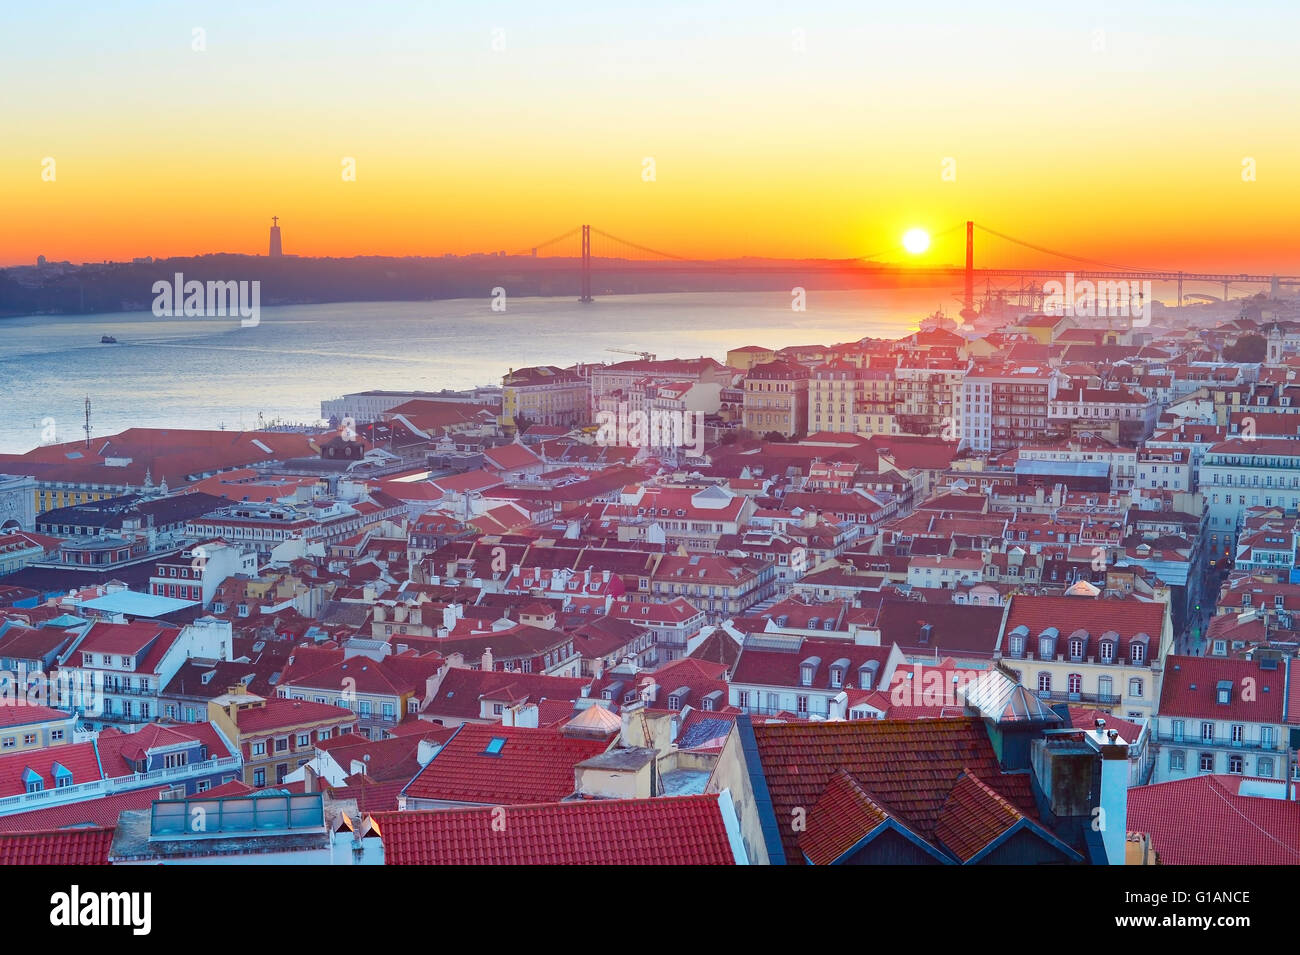 Lisbon cityscape with the sun in the sky at sunset. Portugal - Stock Image